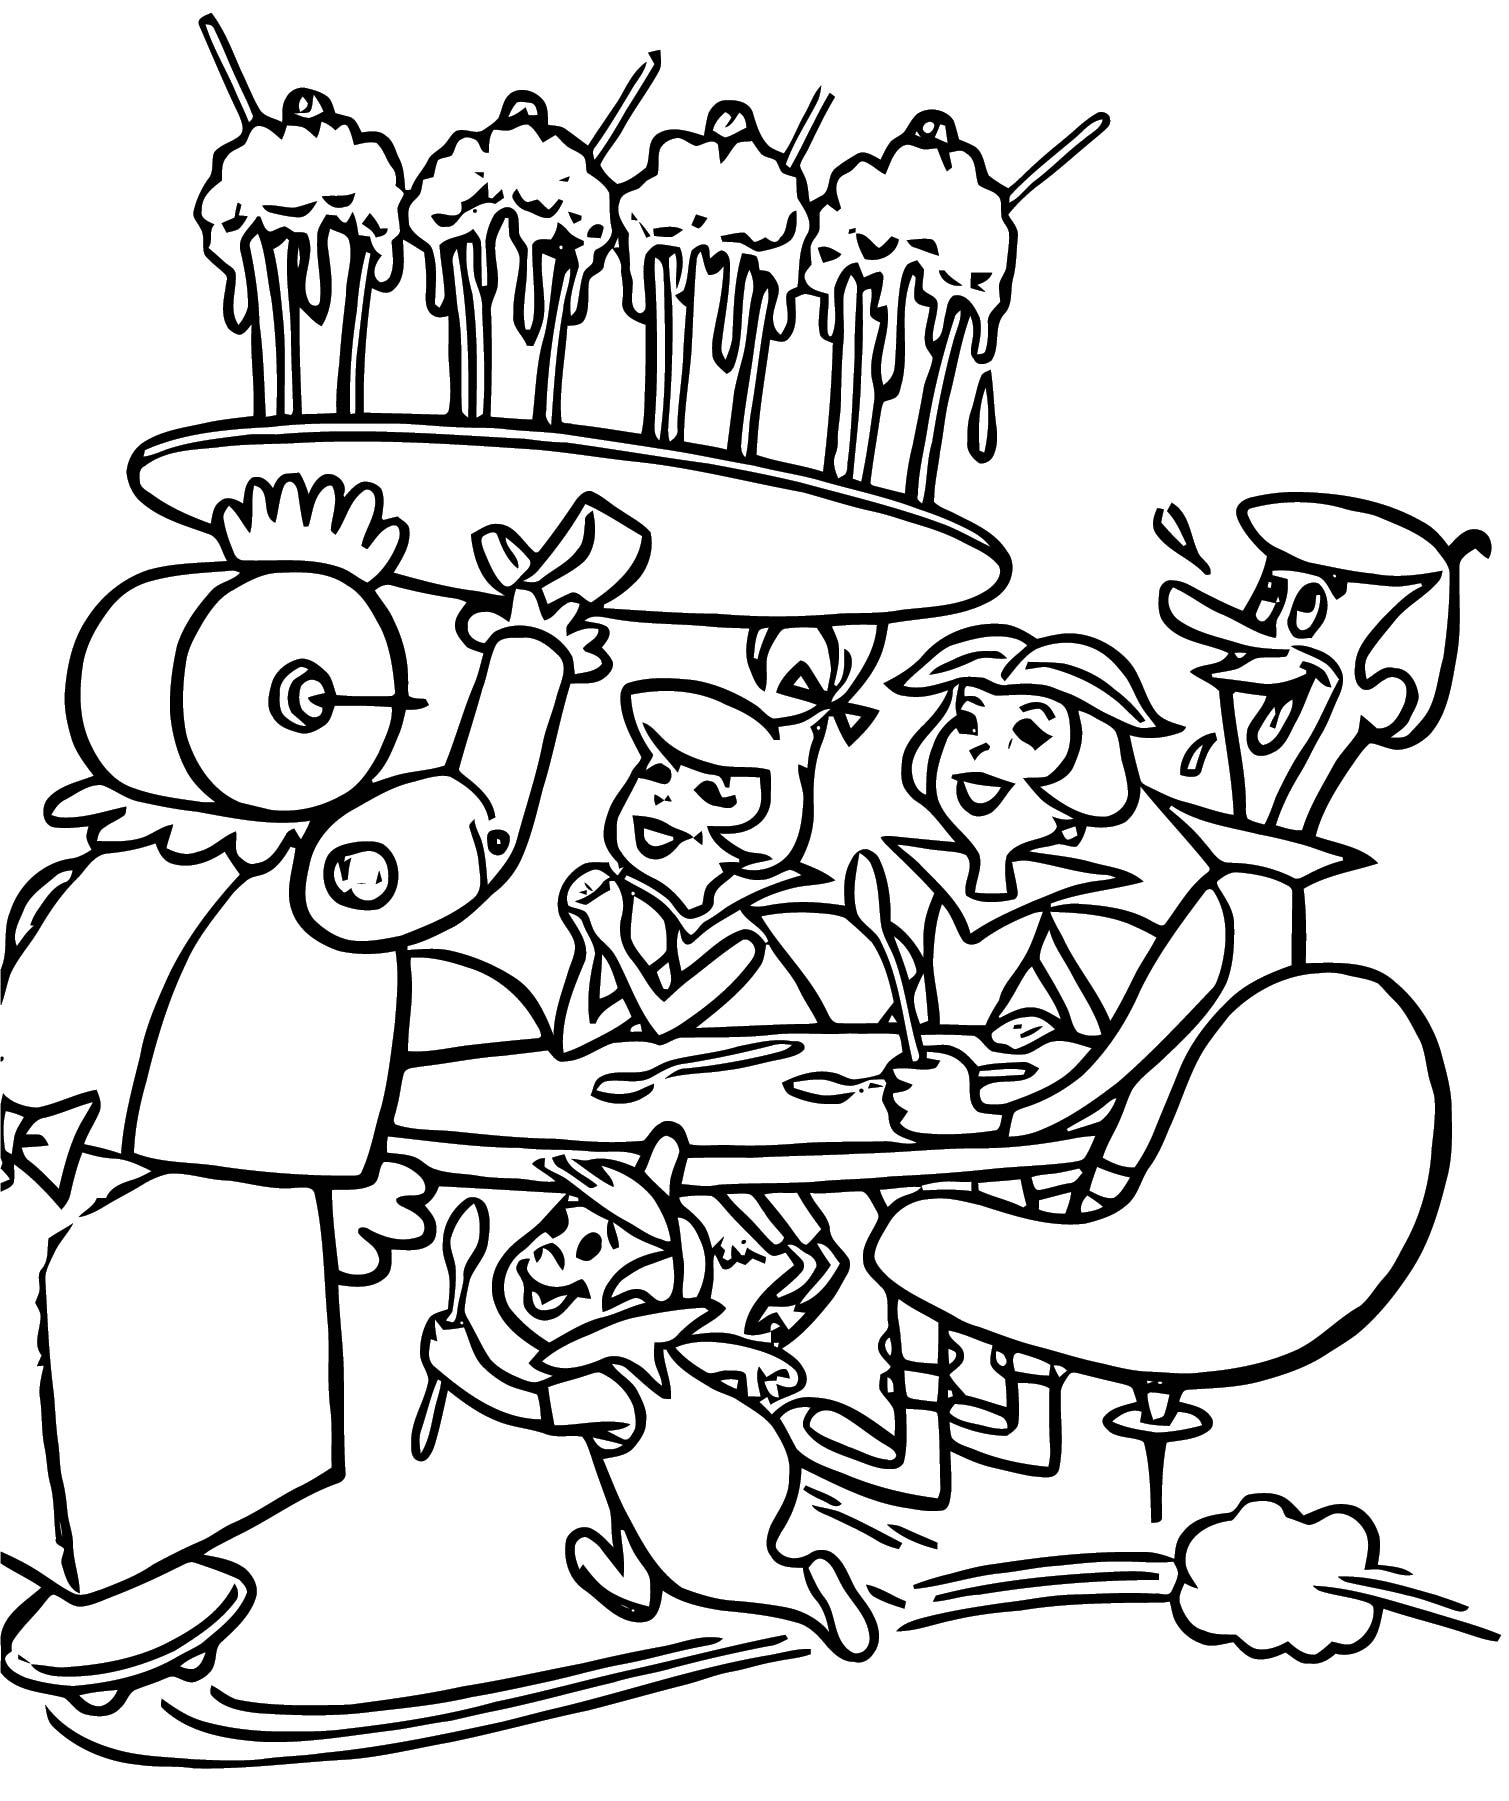 Jetsons Coloring Page 12